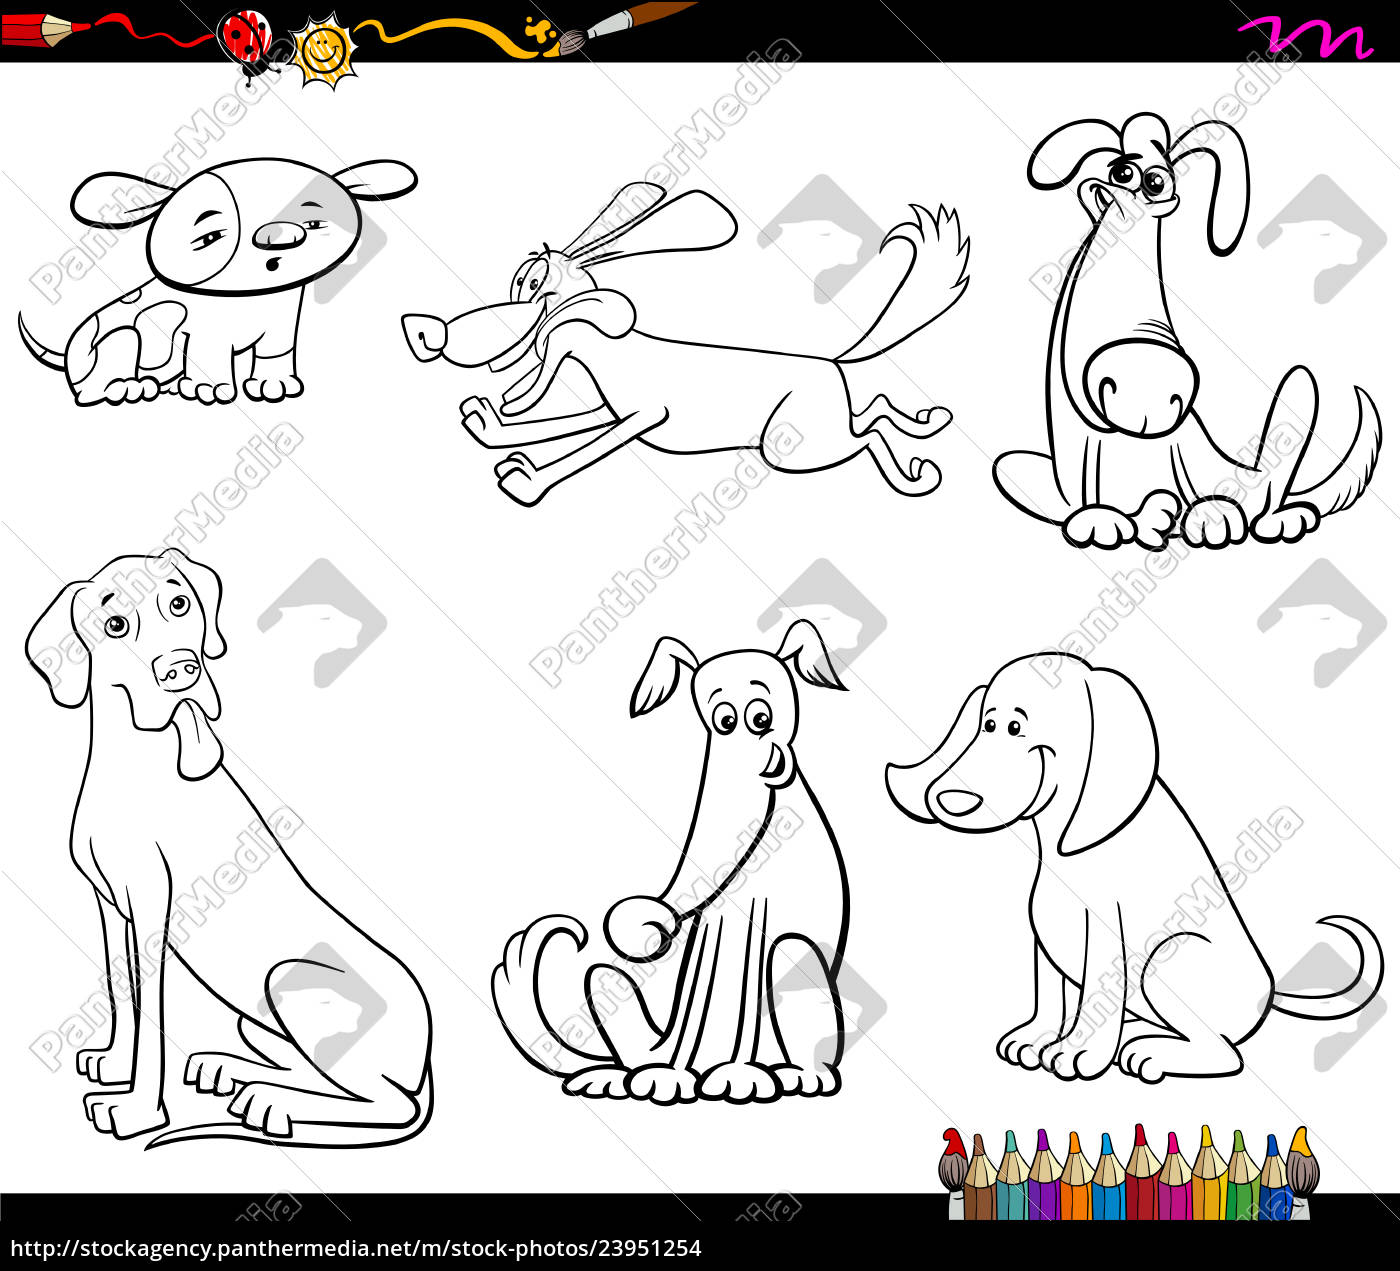 comic dog characters coloring book - Stock Photo - #23951254 ...